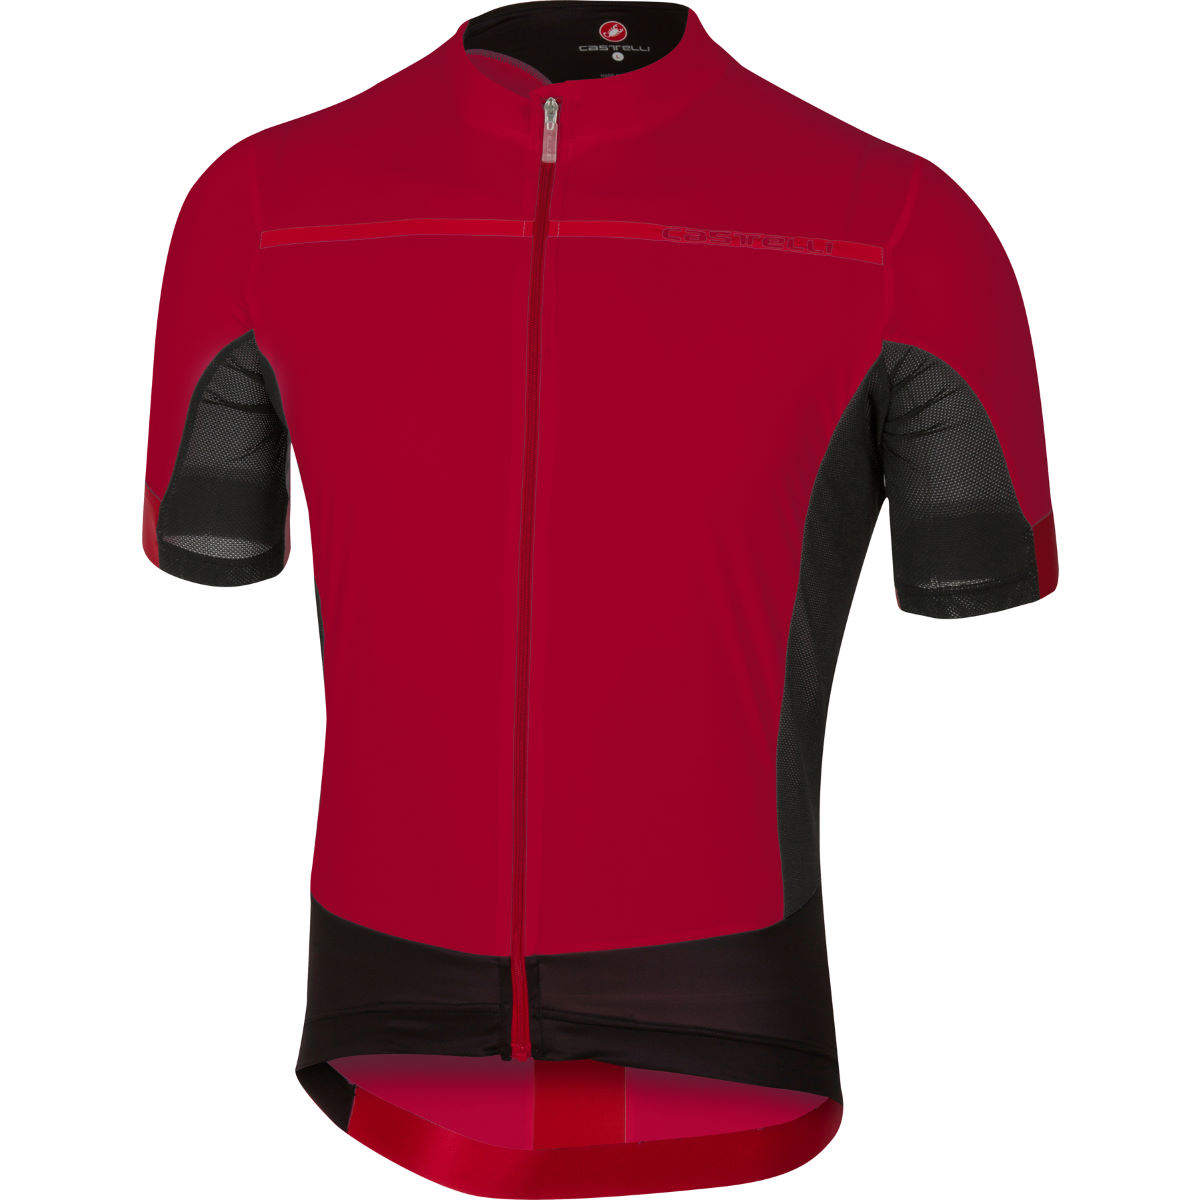 Maillot Castelli Forza Pro - S Ruby Red/Red Maillots vélo à manches courtes